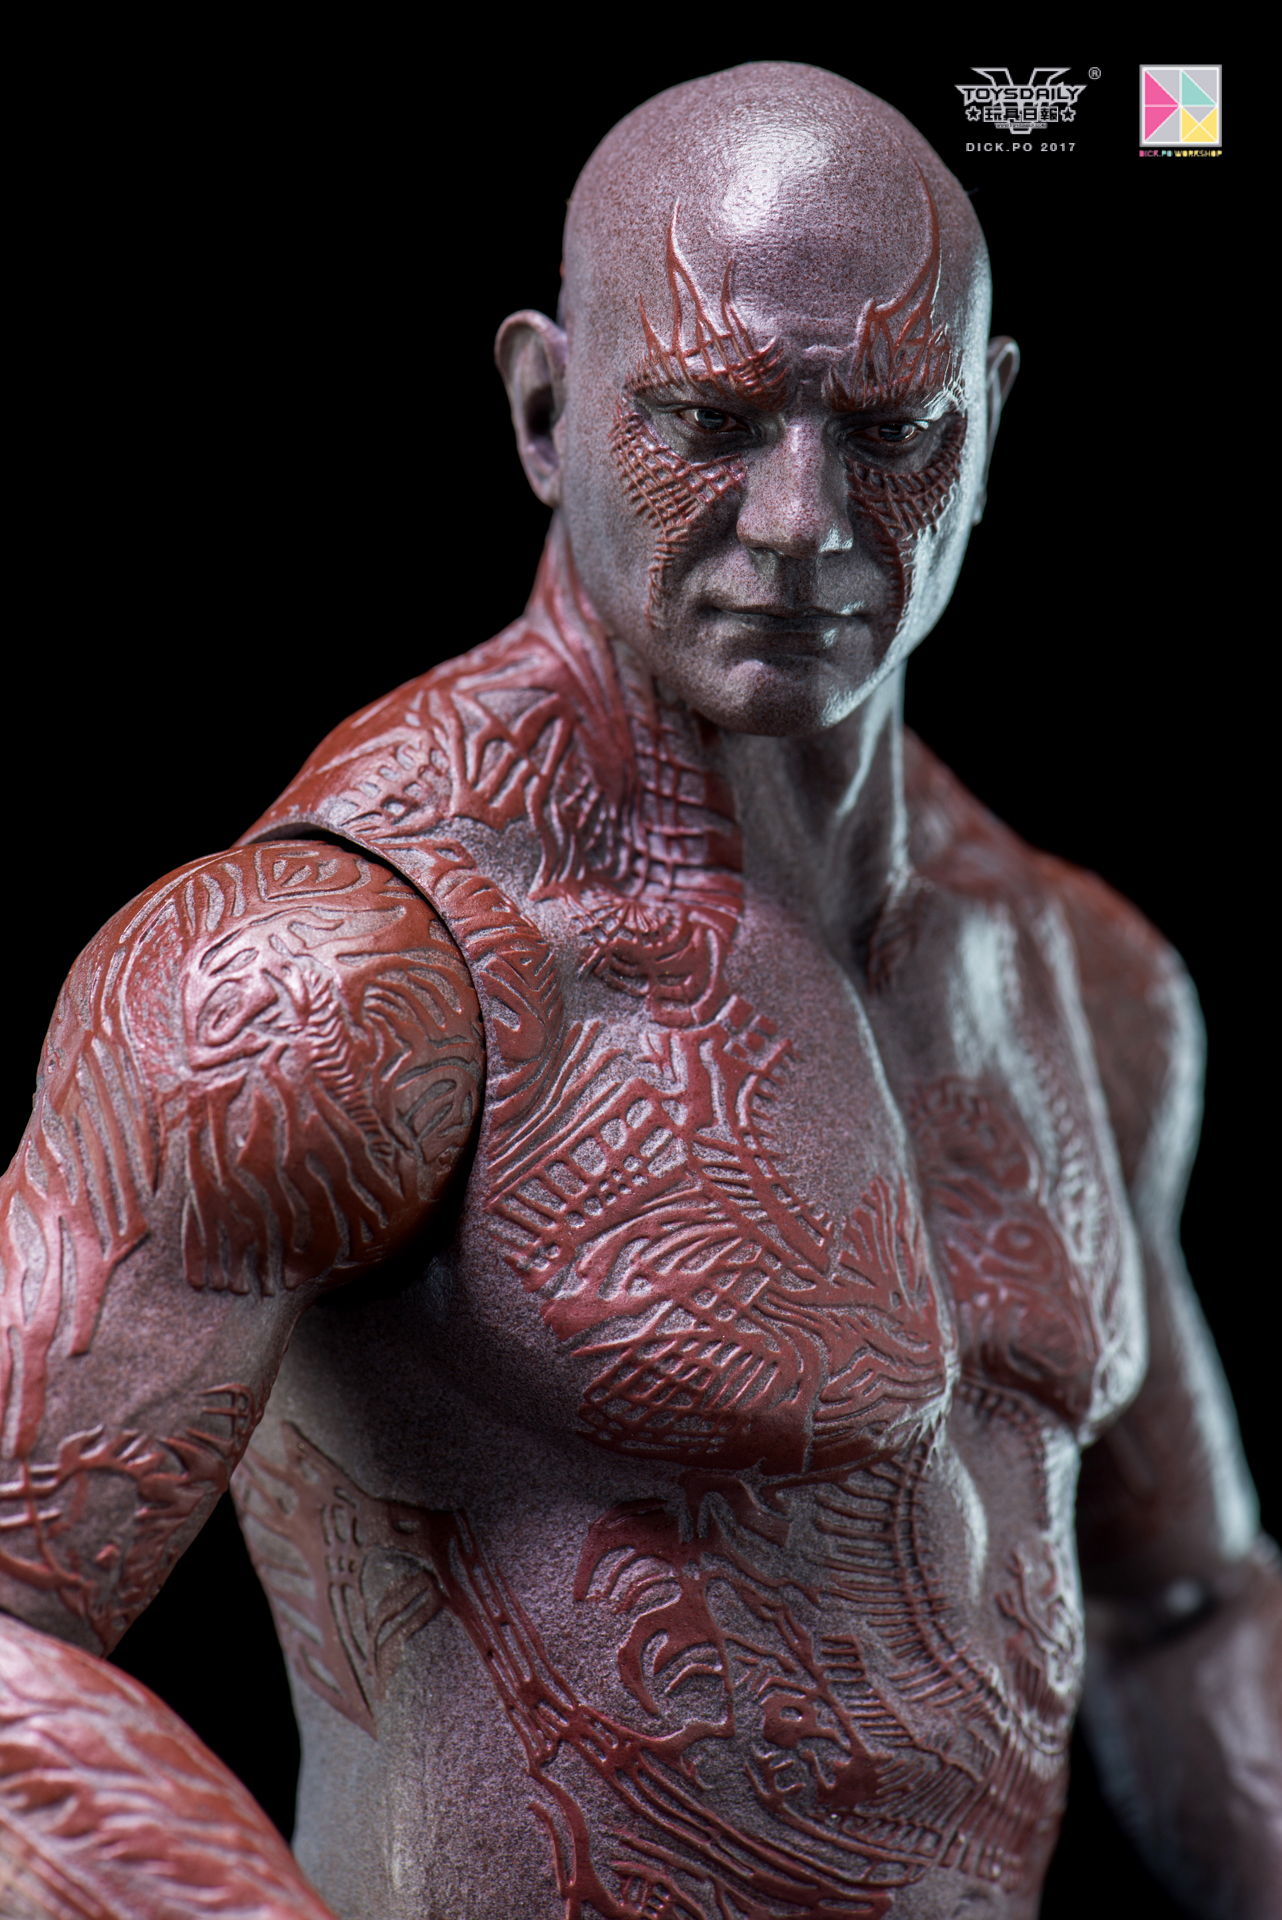 toysdaily_dick.po_Hottoys_DARX-19.jpg